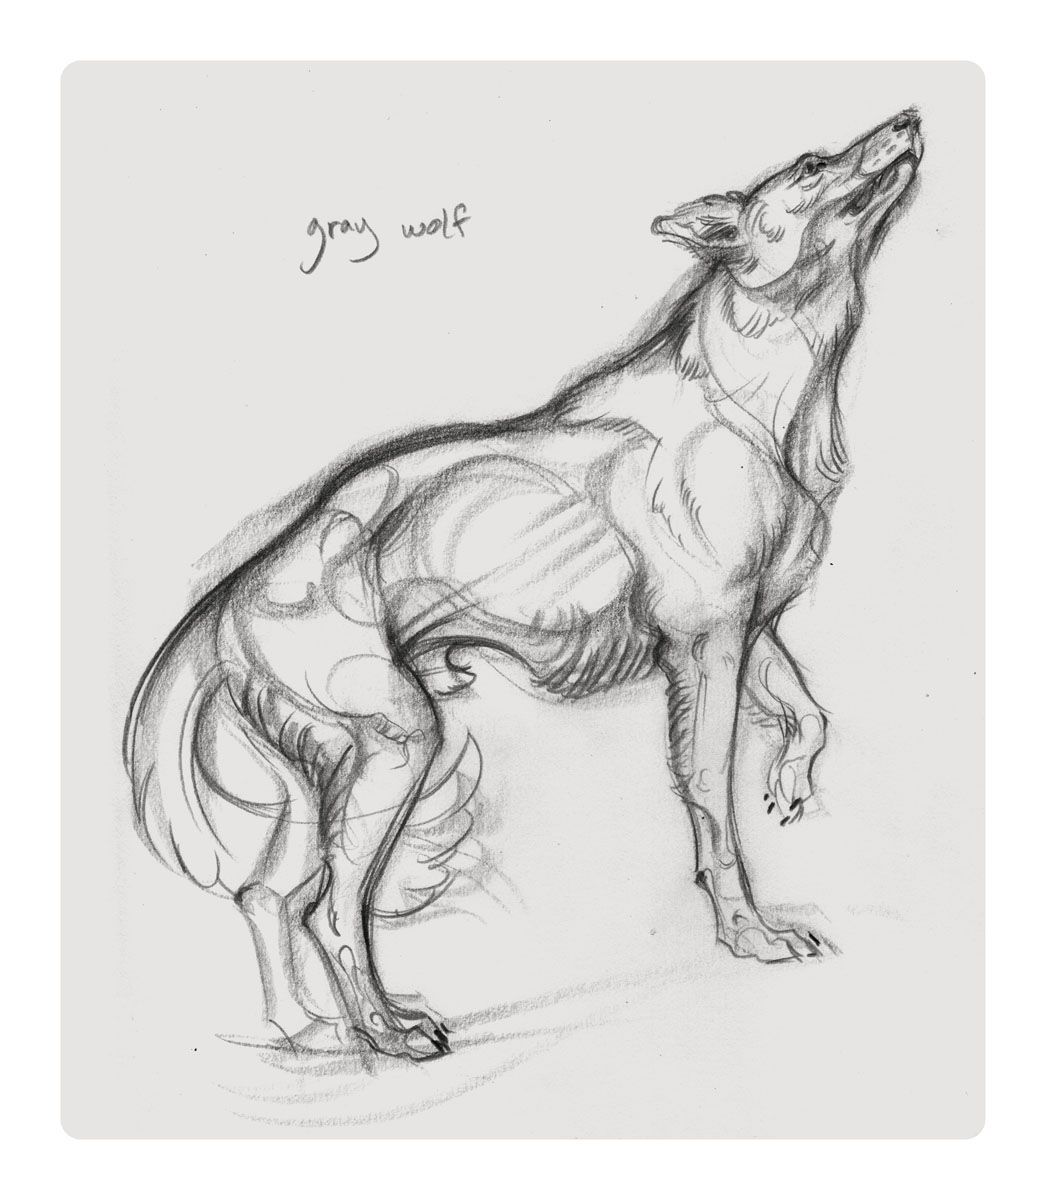 jaw cooper gray wolf | DRAWINGS | Pinterest | Gray wolf, Wolf and ...